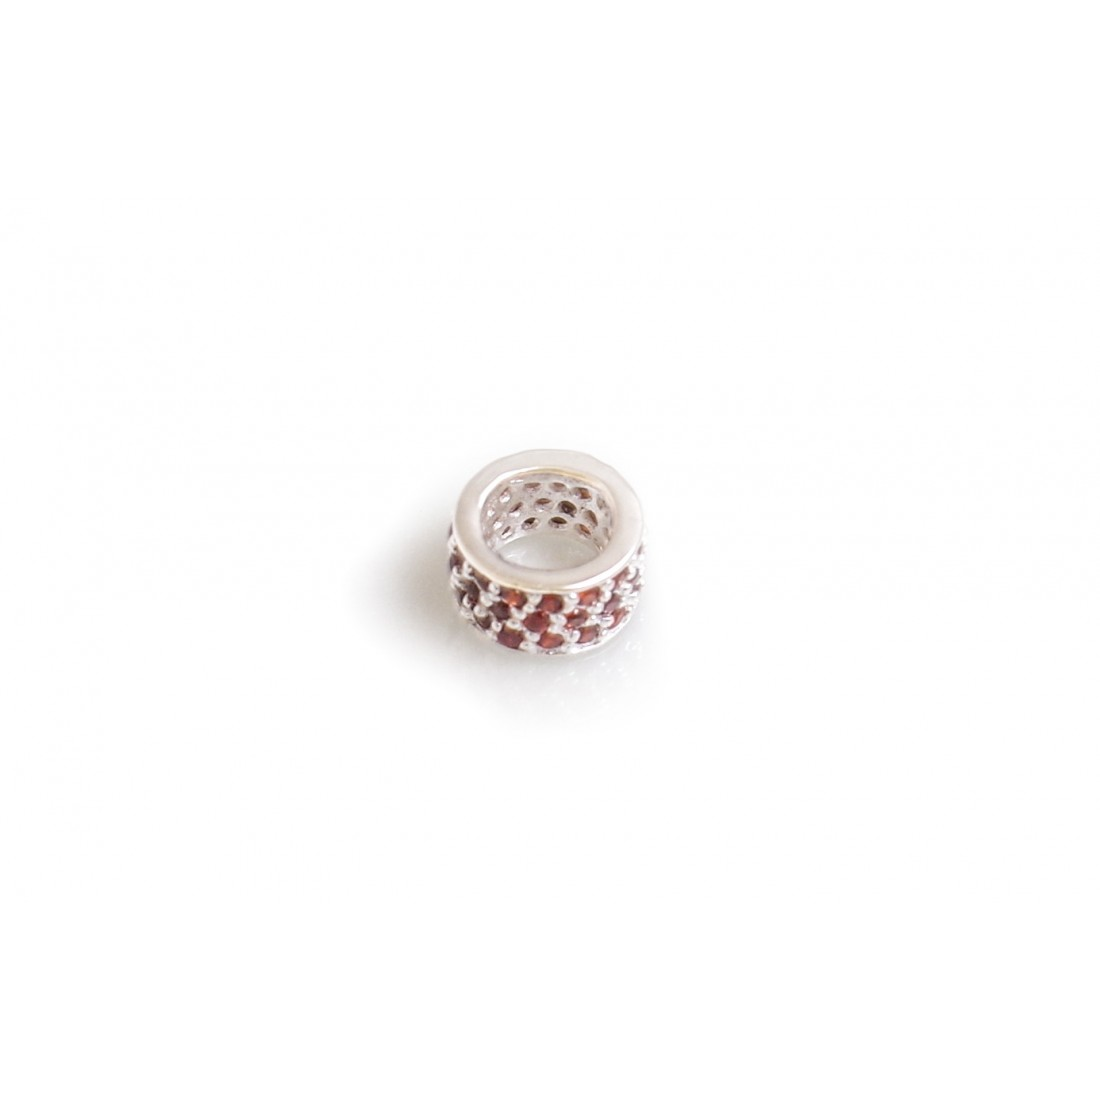 Exclusive Sterling Silver & Red CZ Starlight Roller Charm Bead